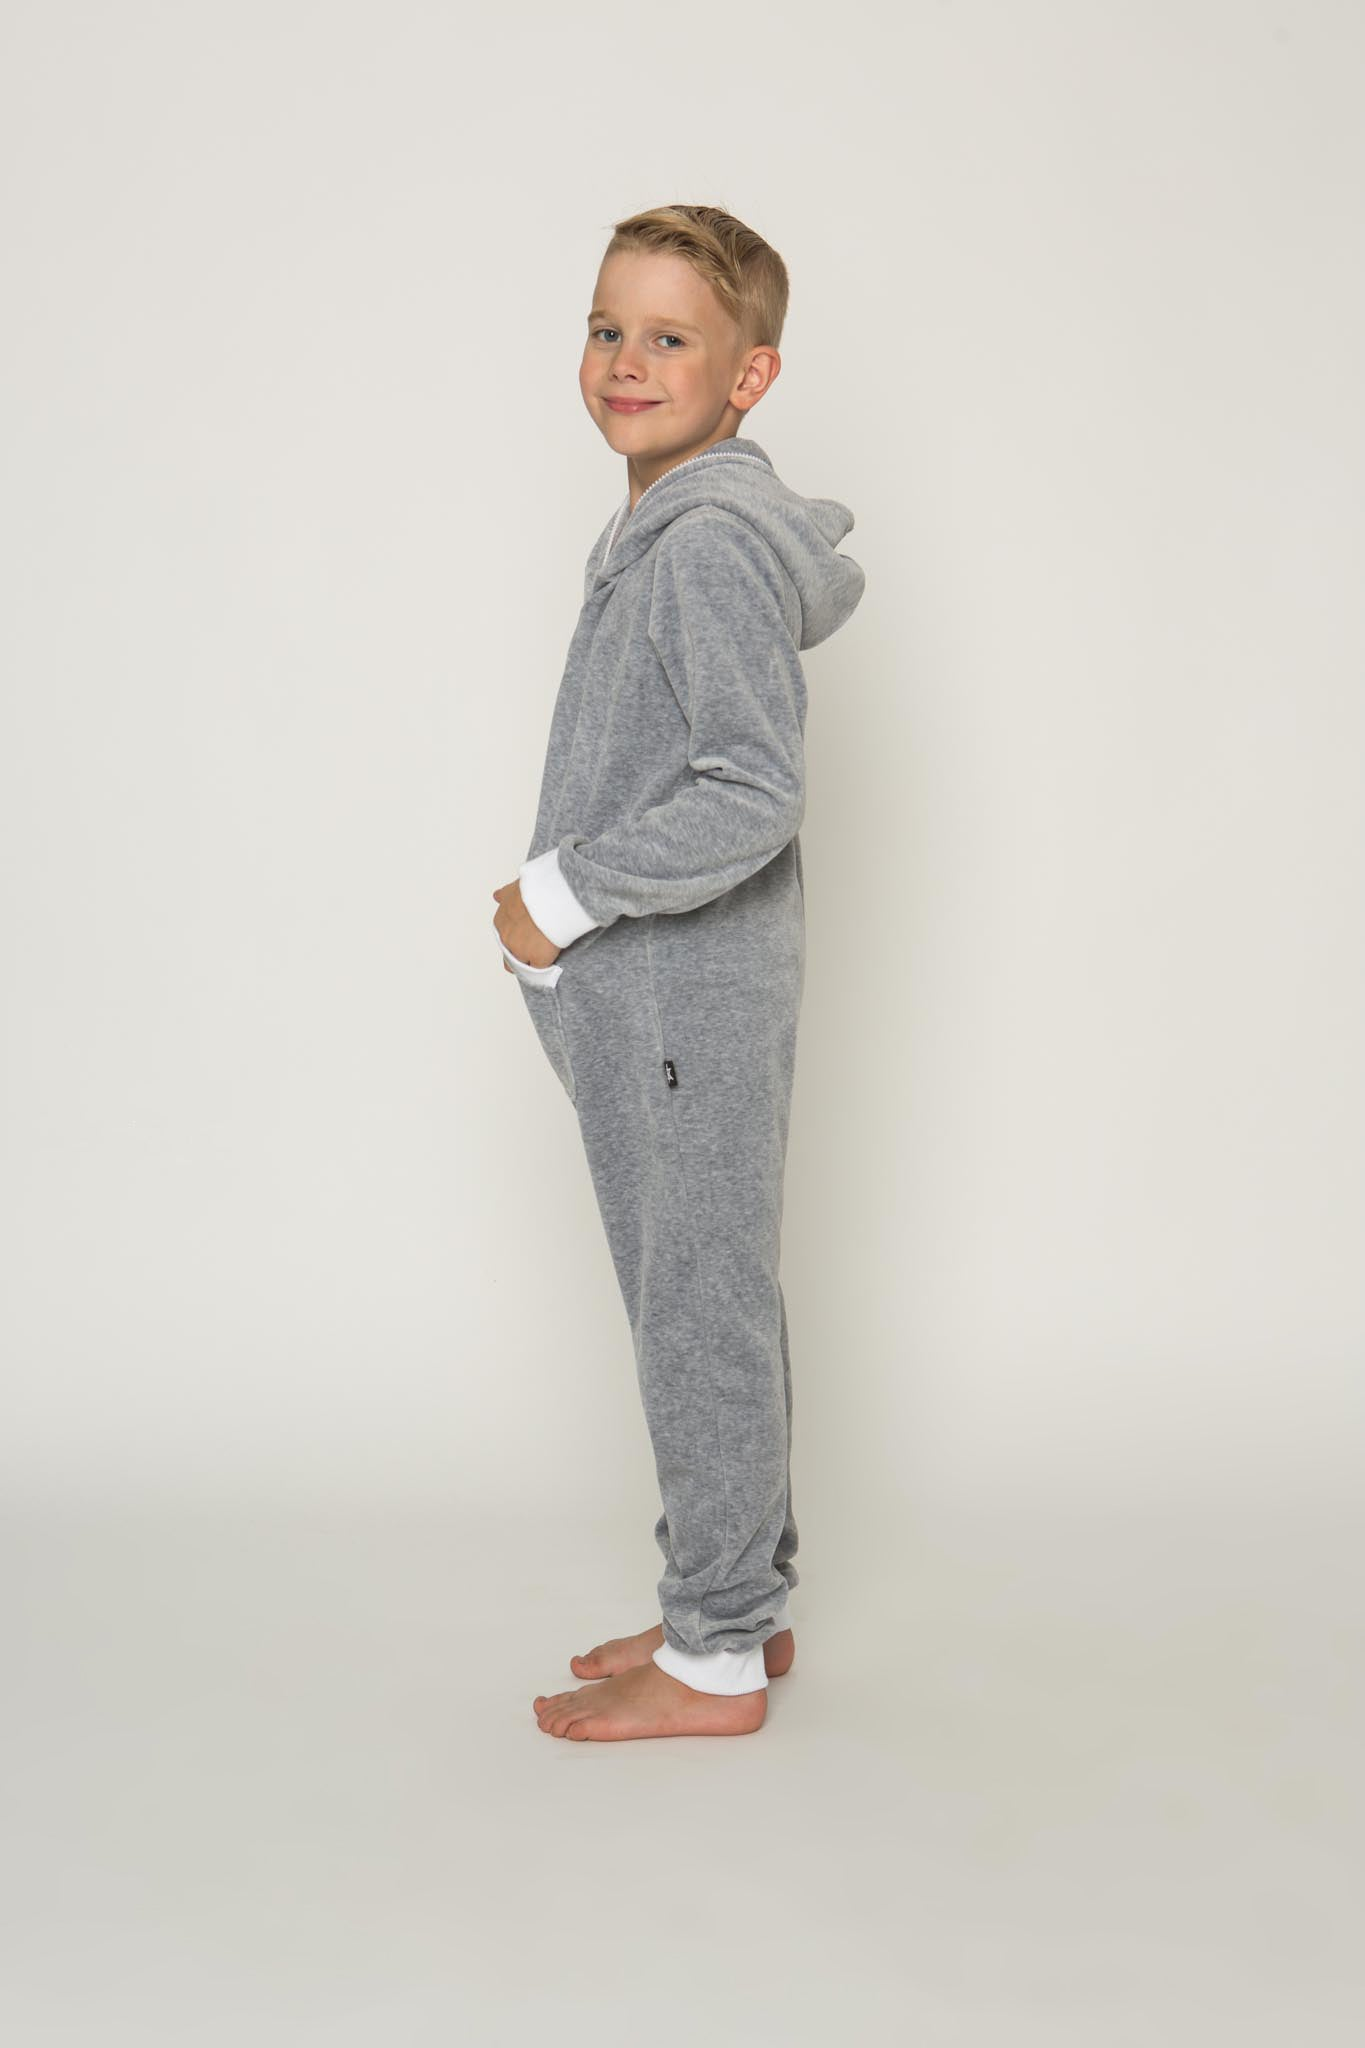 Sofa Killer light grey unisex kids velours onesie